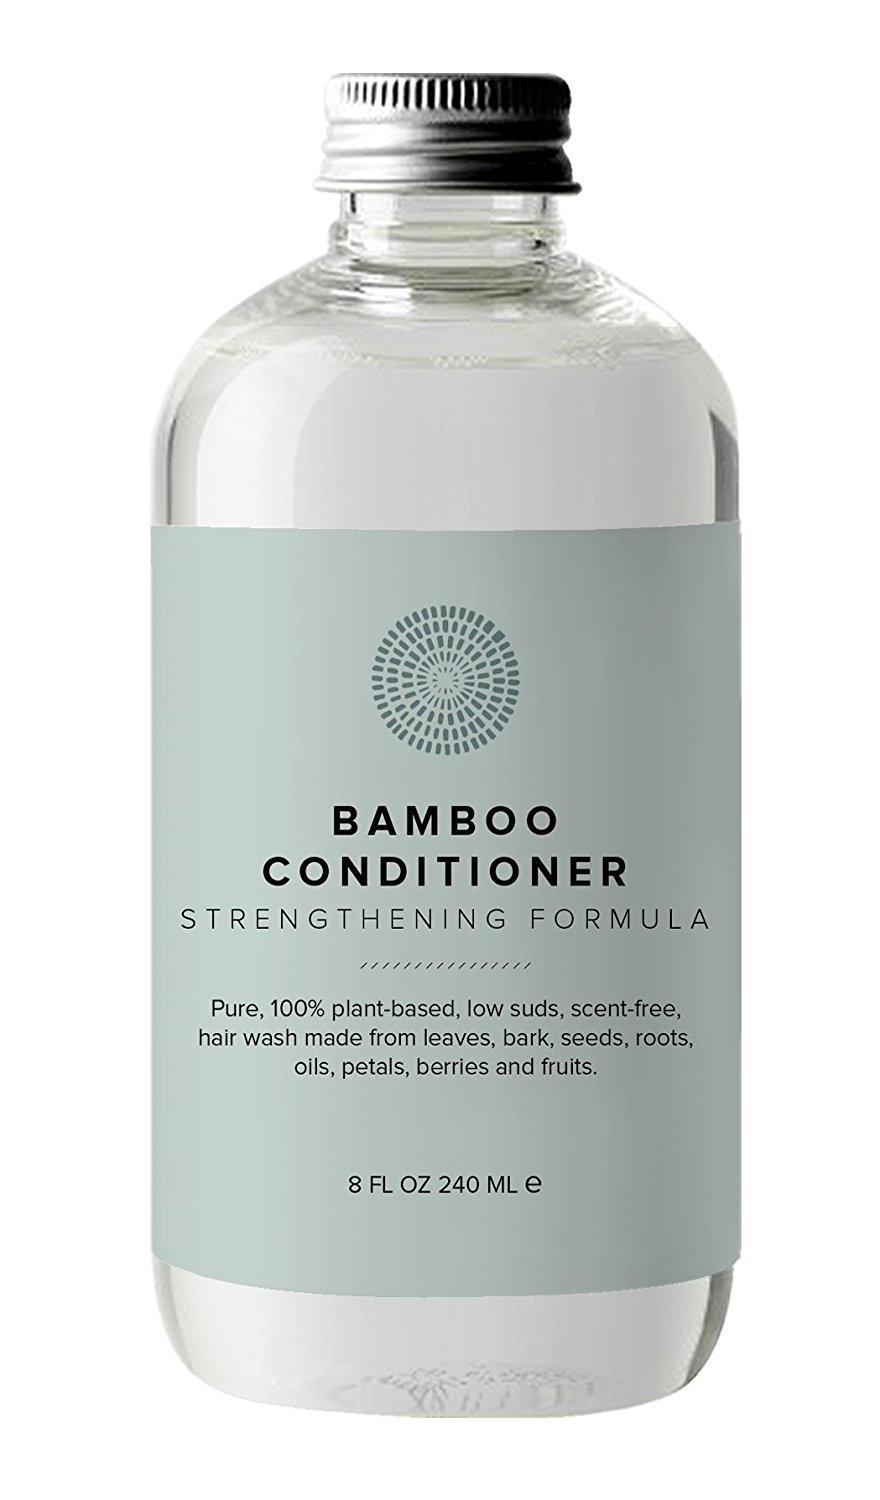 Hairprint - 100% Plant-Based / All Natural Fermented Bamboo Conditioner (8 fl oz / 240 ml)